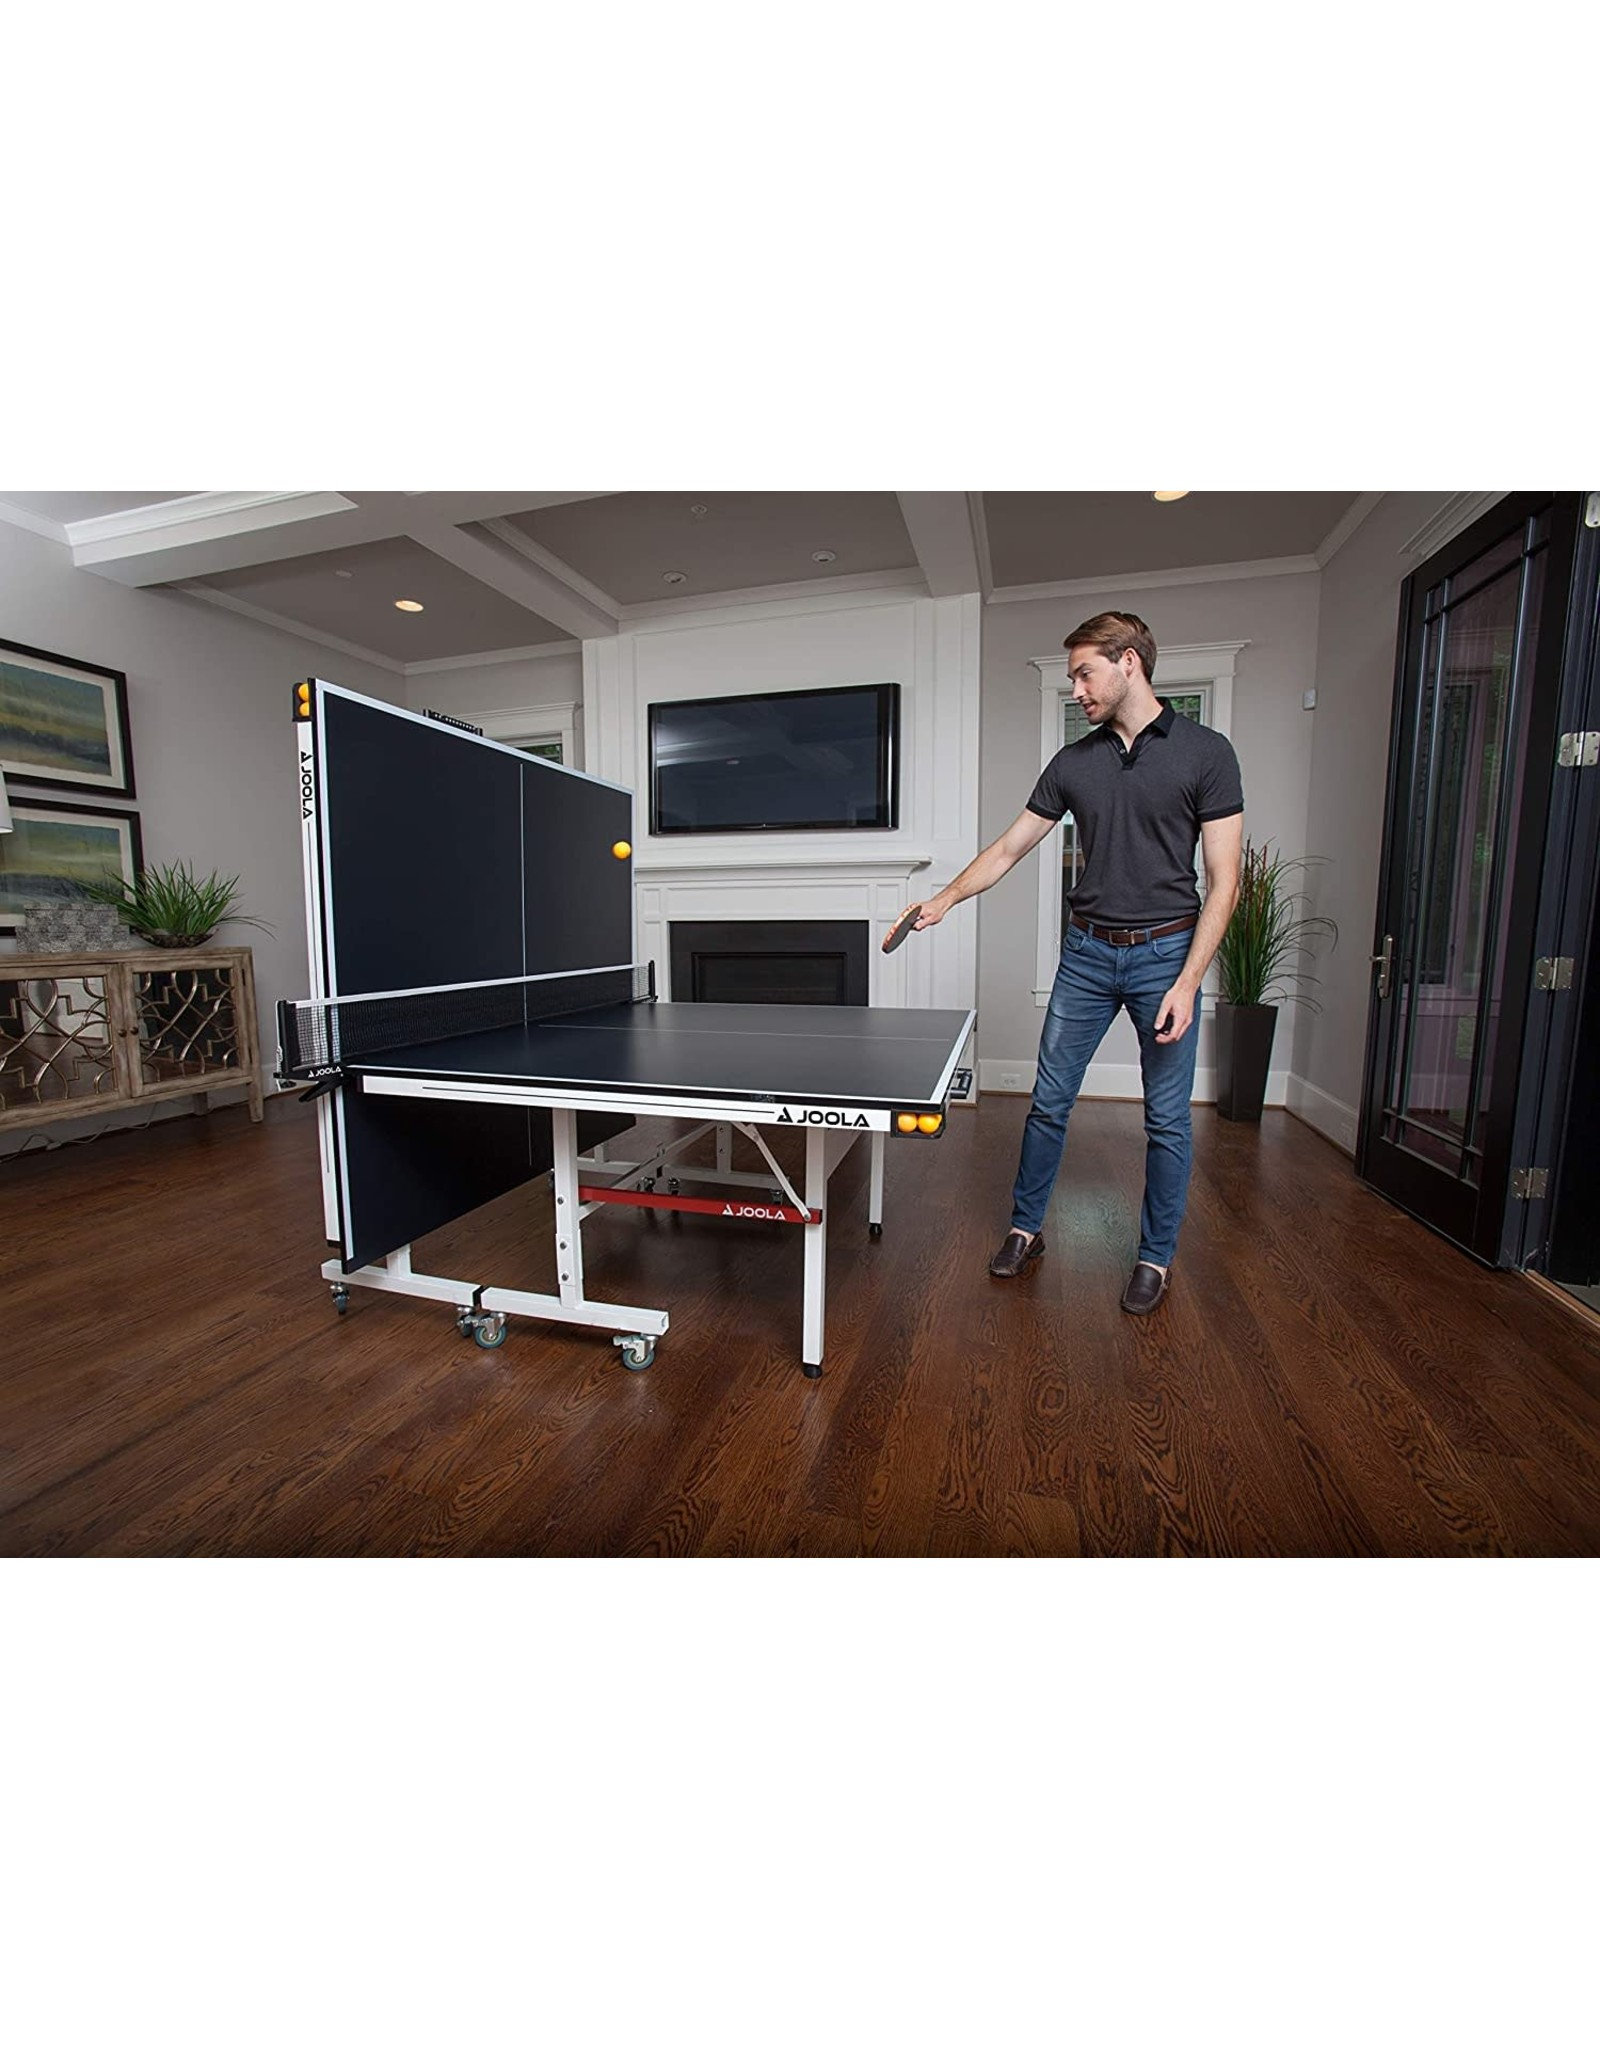 JOOLA JOOLA Rally TL - Professional MDF Indoor Table Tennis Table w/ Quick Clamp Ping Pong Net & Post Set - 10 Minute Easy Assembly - Corner Ball Holders - Ping Pong Table w/ Playback Mode,